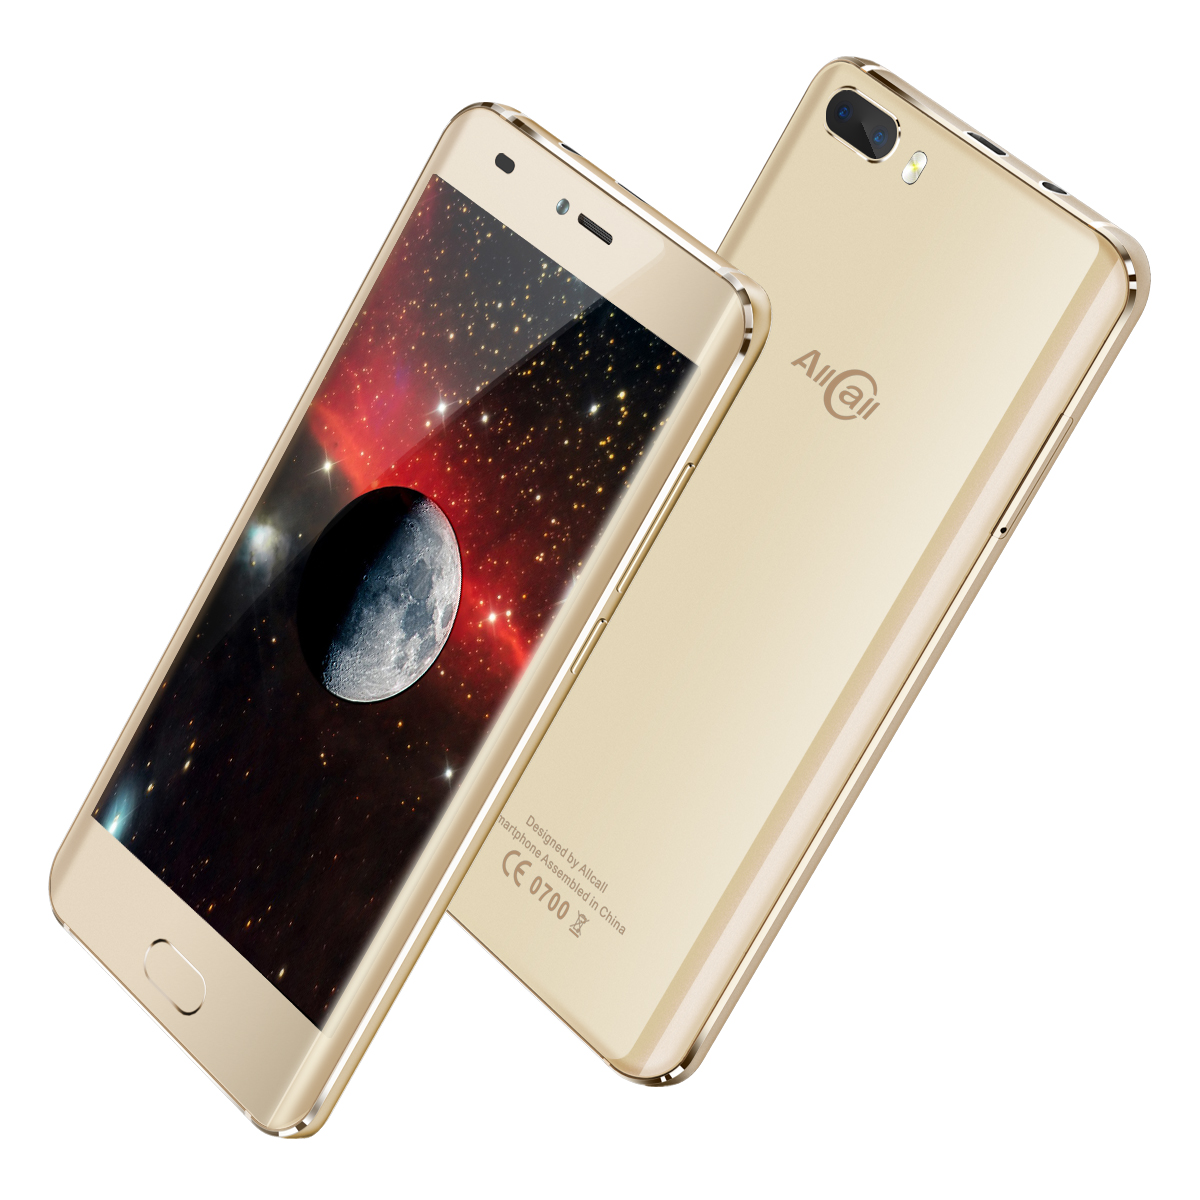 Allcall Rio Android Gold Smartphone